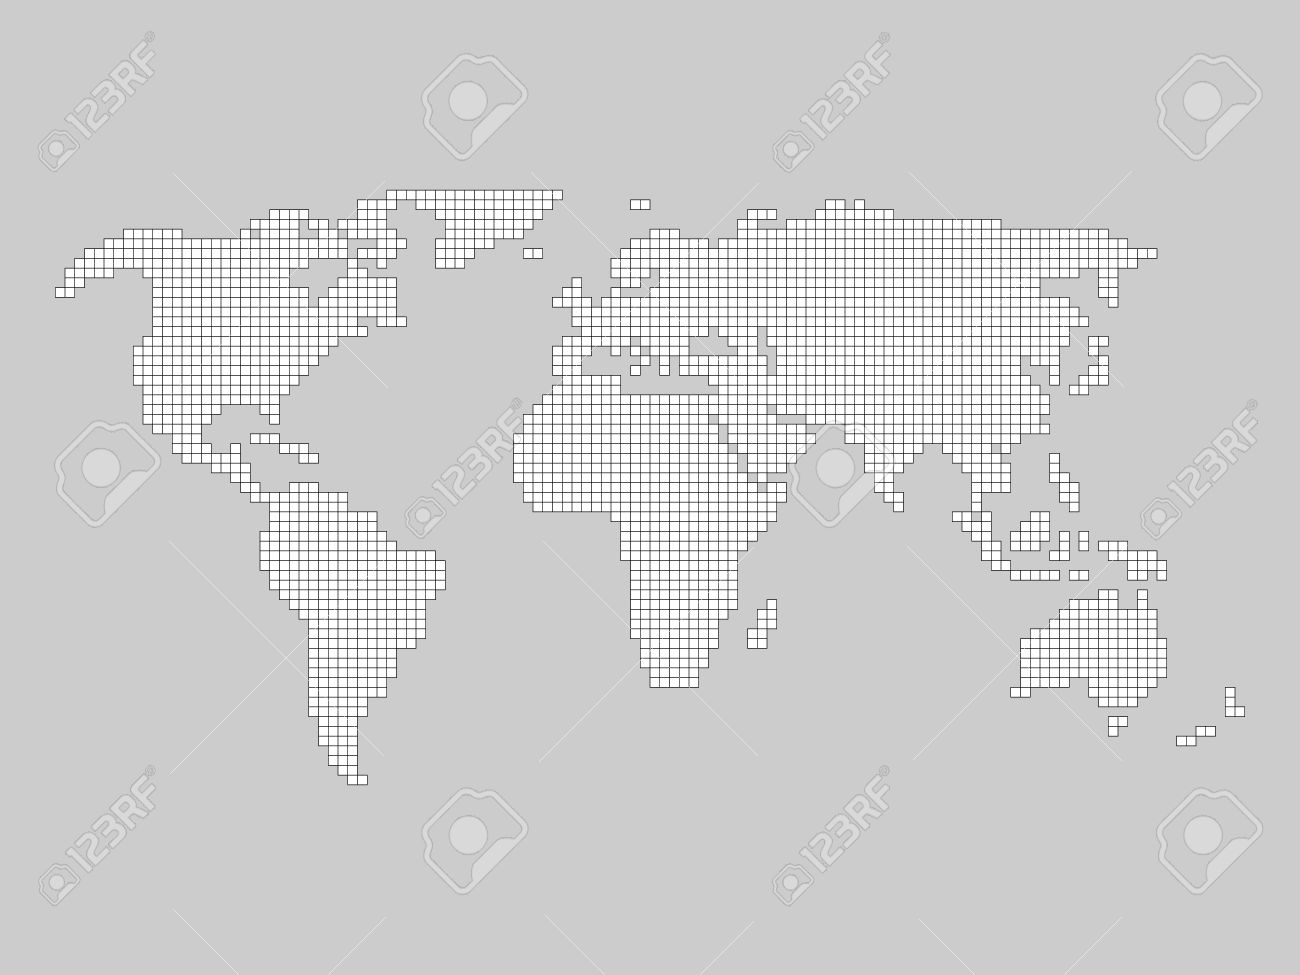 World map grid tiled by small squares with black outline and vector world map grid tiled by small squares with black outline and white fill on grey background gumiabroncs Image collections